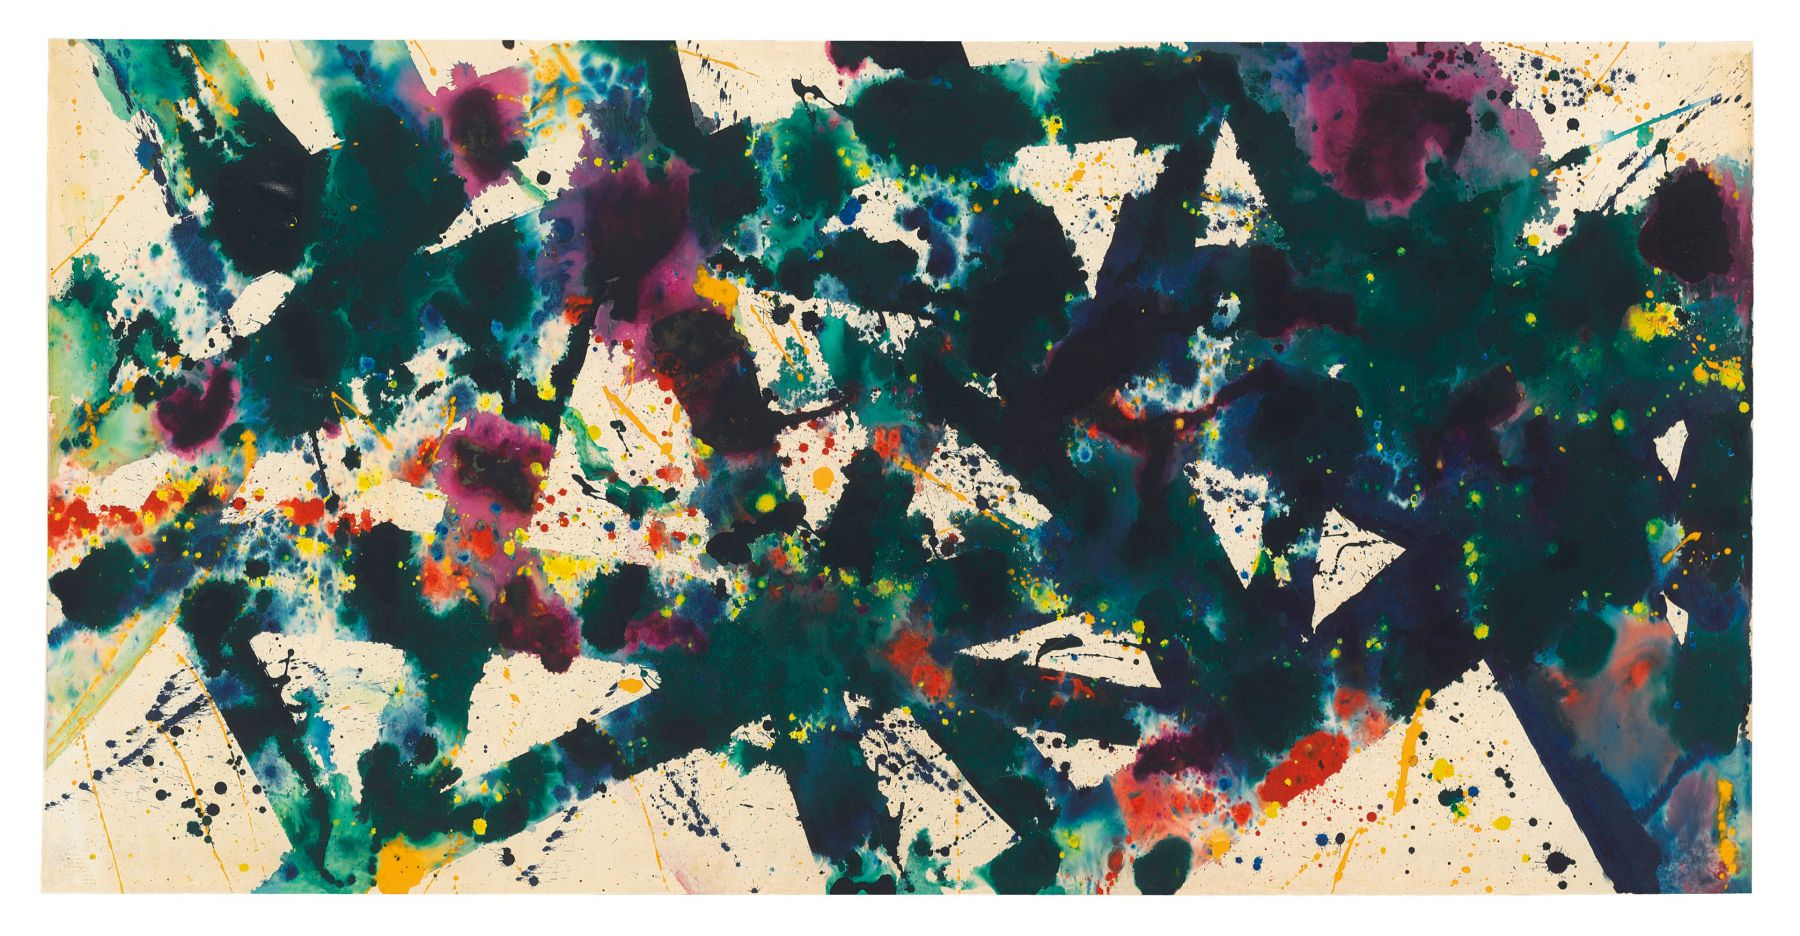 Sam Francis, Untitled (SF77-120), 1977-8 Acrylic on rice paper laid down on paper laid down on canvas, unframed, 94.5 x 186.7 cm. (37 1/4 x 73 1/2 in.)  ©Helly Nahmad Gallery NY